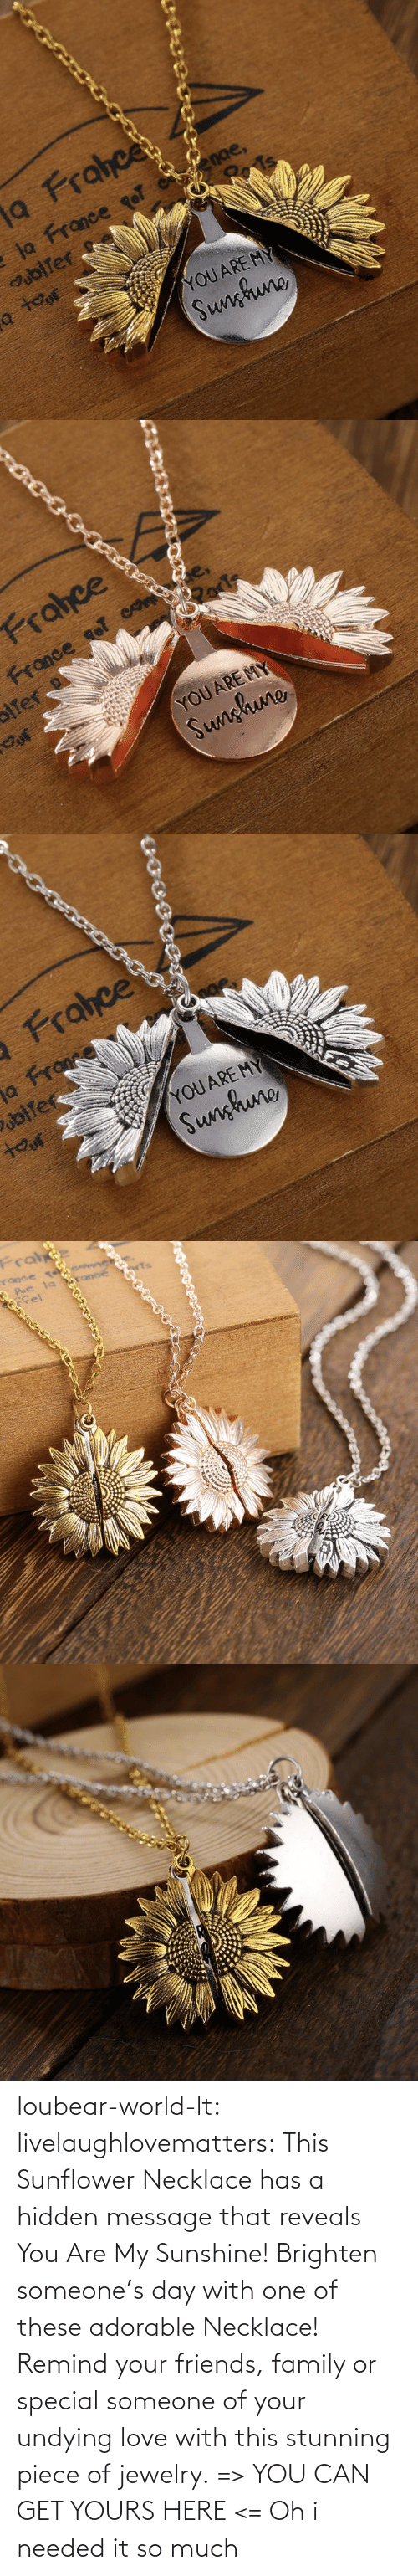 With: loubear-world-lt: livelaughlovematters:   This Sunflower Necklace has a hidden message that reveals You Are My Sunshine! Brighten someone's day with one of these adorable Necklace! Remind your friends, family or special someone of your undying love with this stunning piece of jewelry. => YOU CAN GET YOURS HERE <=    Oh i needed it so much